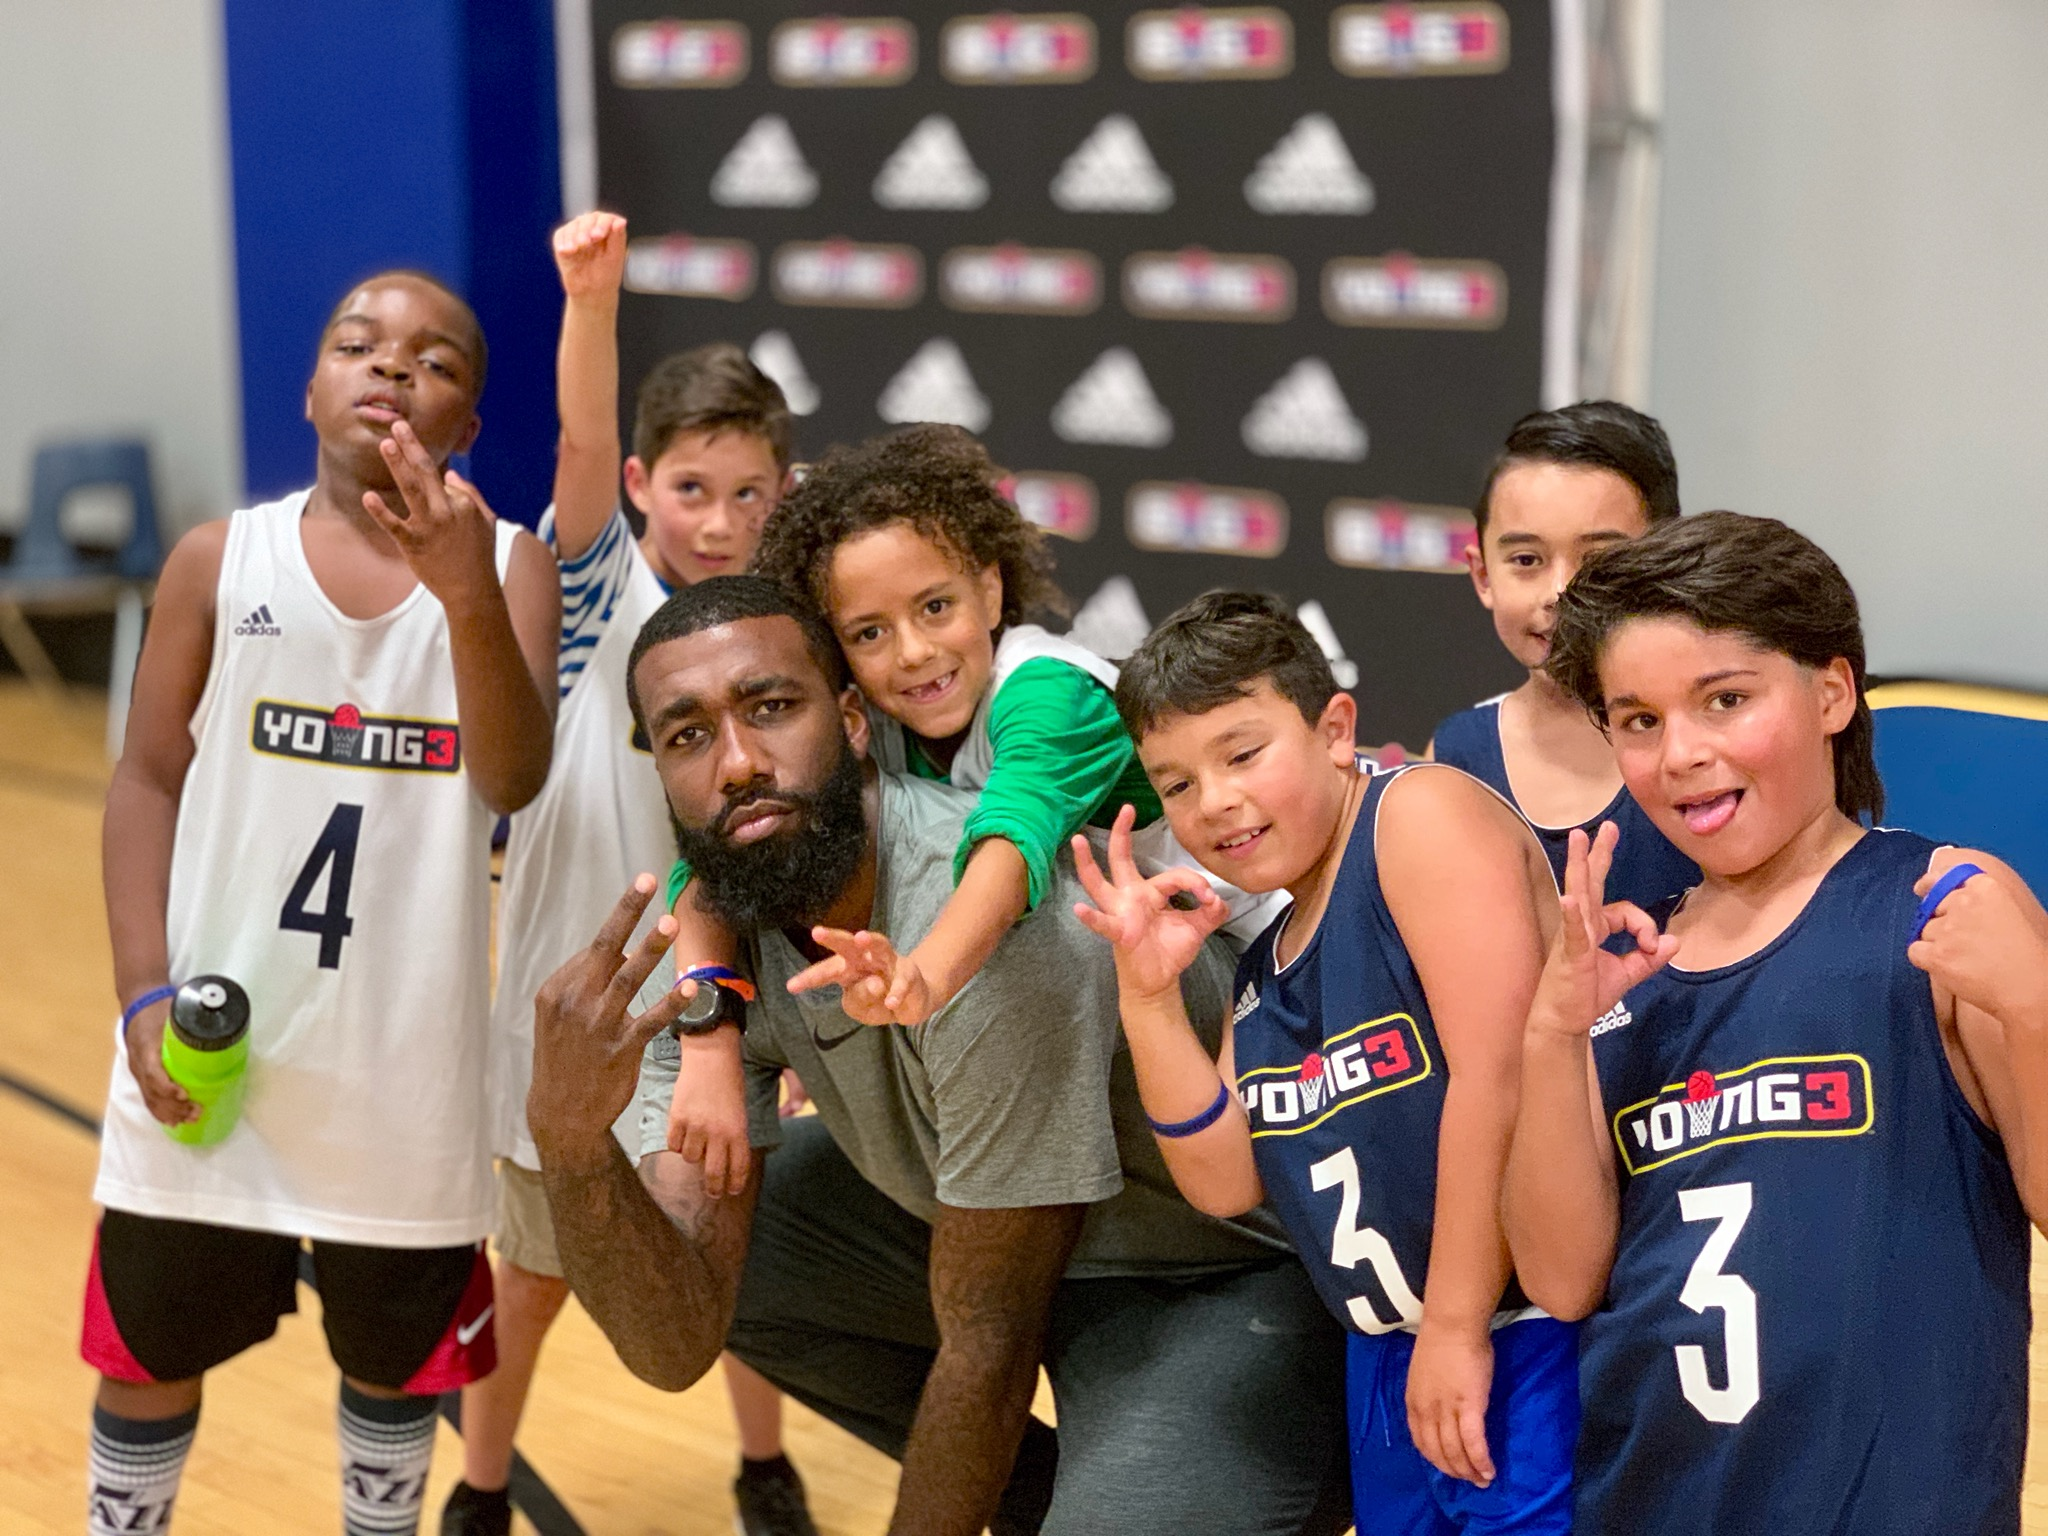 Salt Lake City Falls In Love With The Young3 Experience